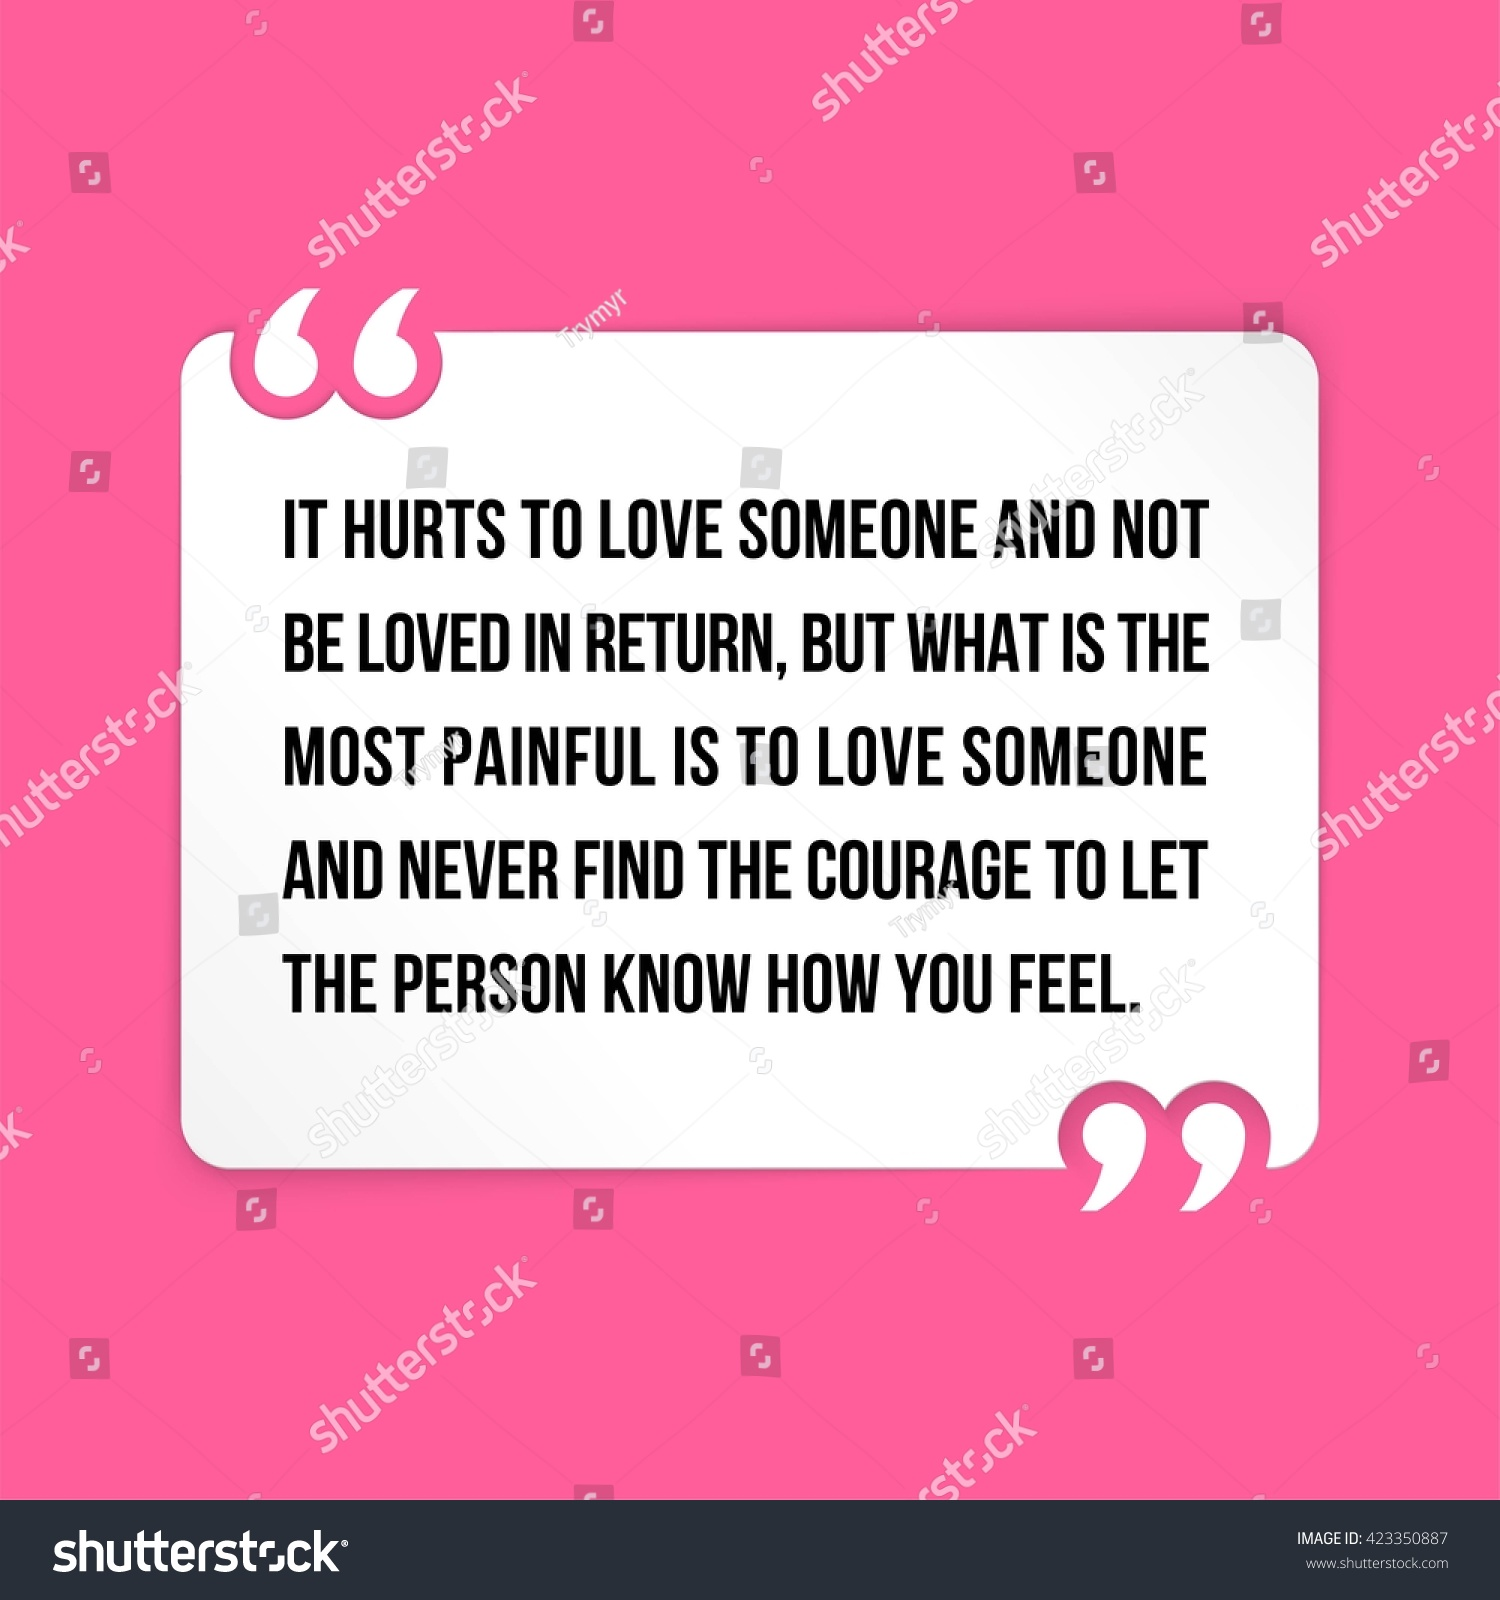 why does it hurt to love someone